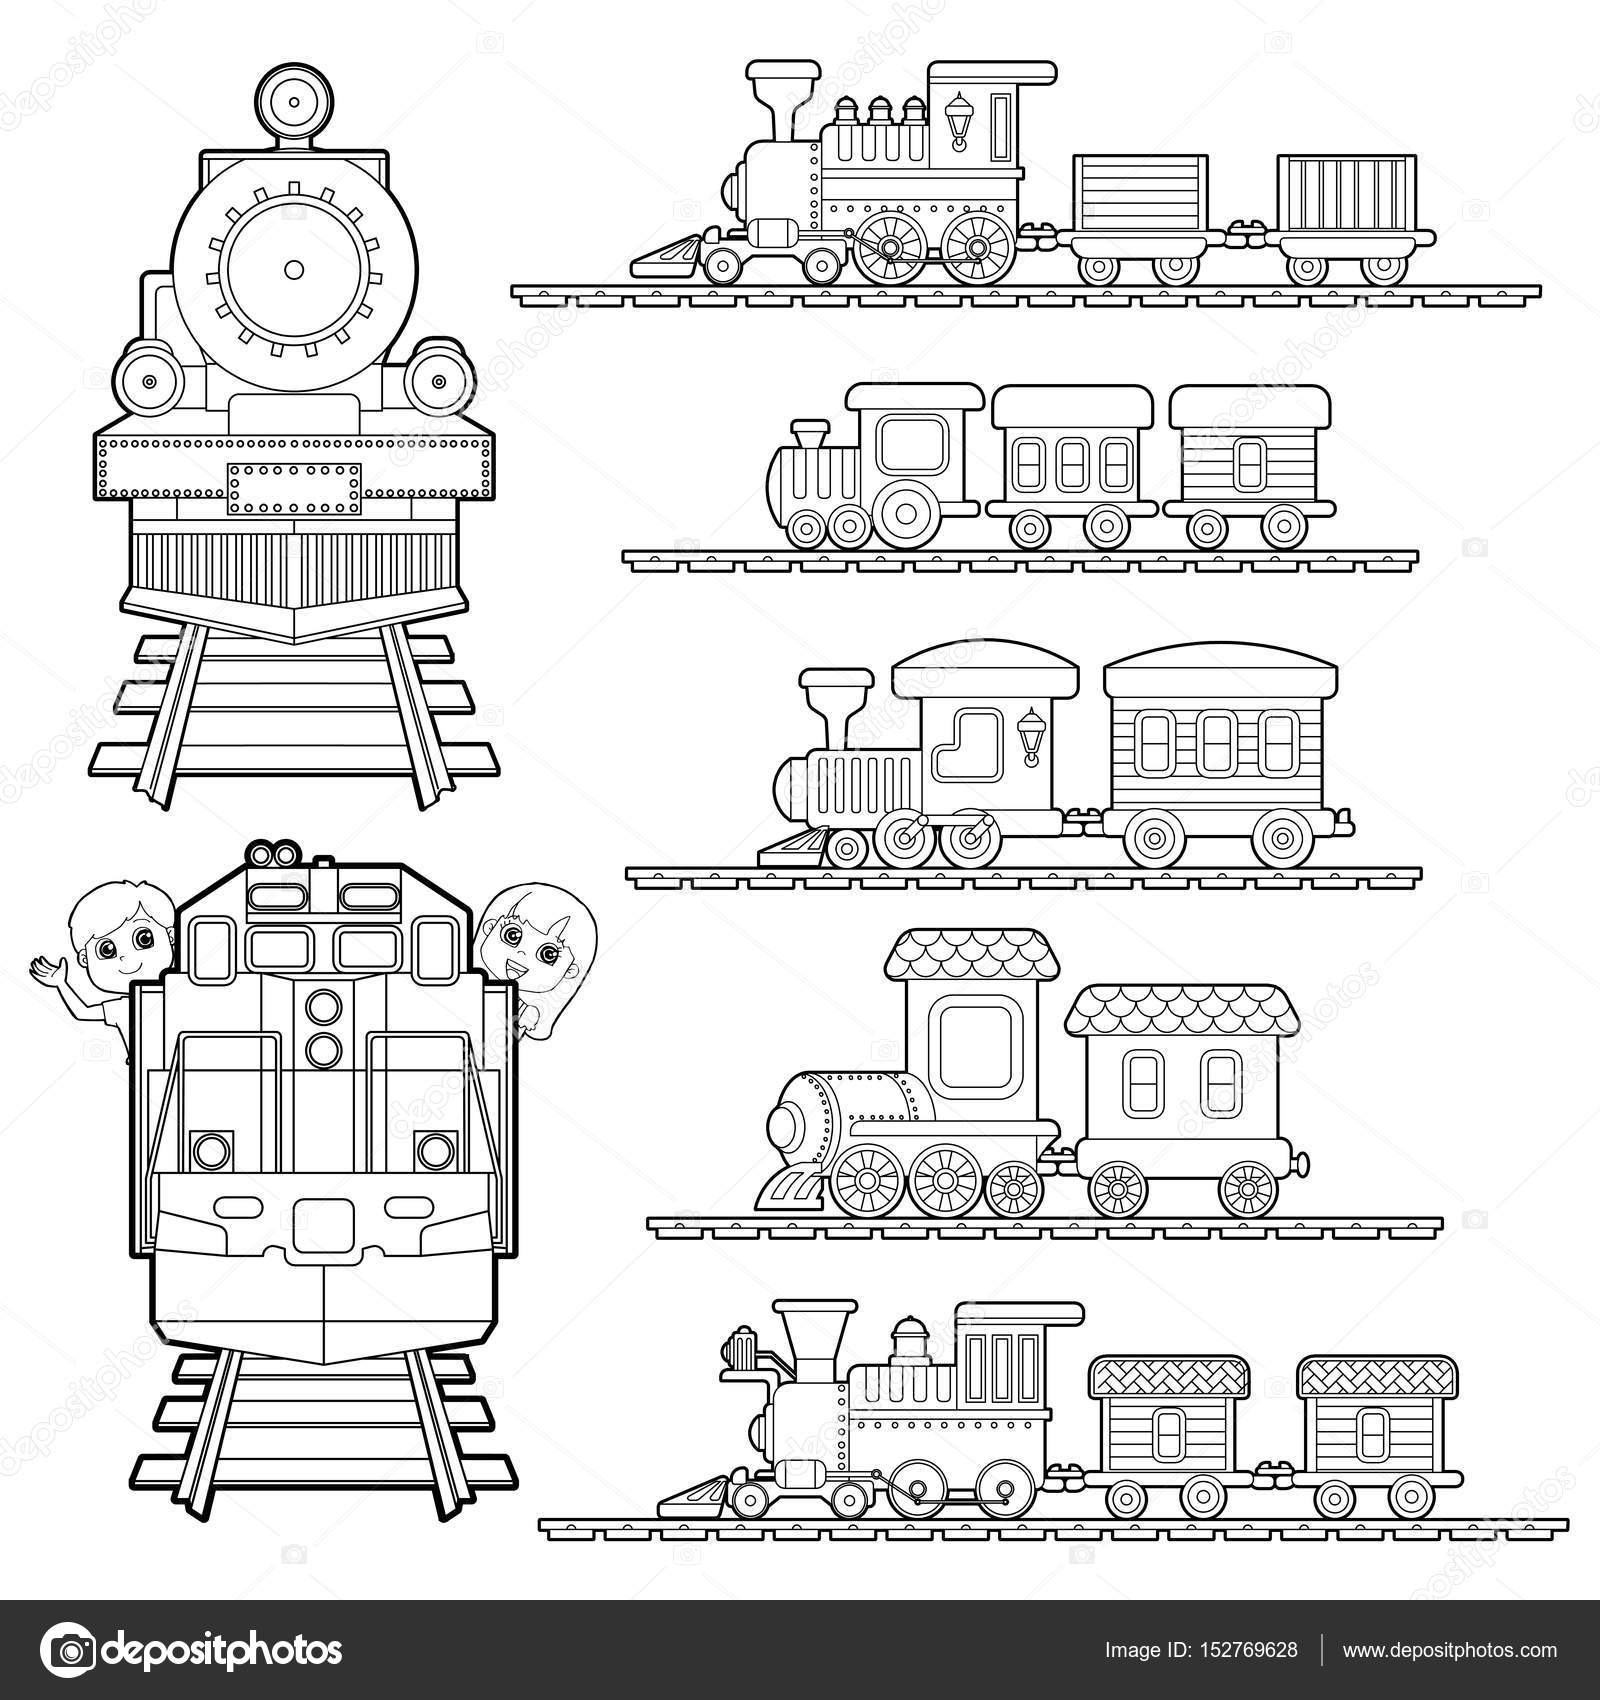 L Train Engines Work Diagram Penguin Duo Therm Wiring